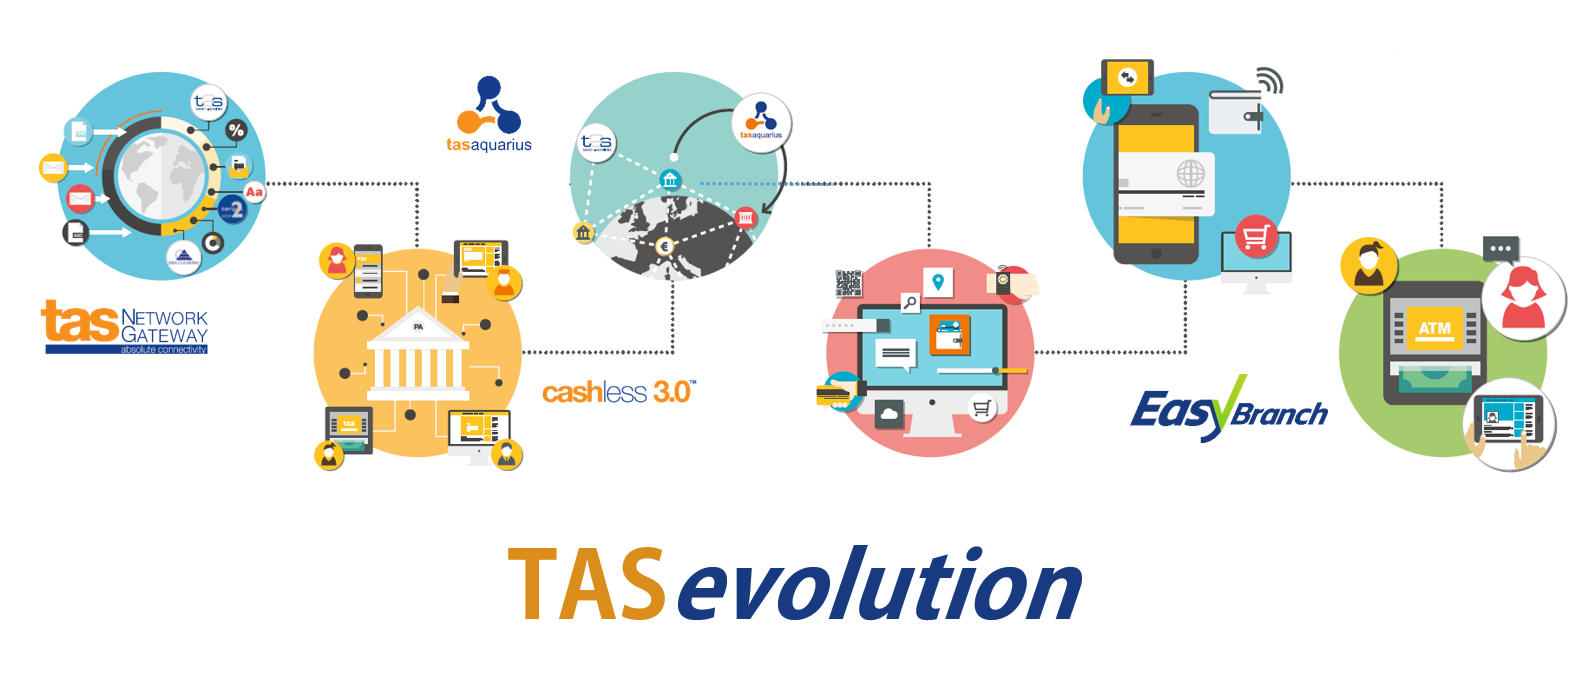 tas evolution